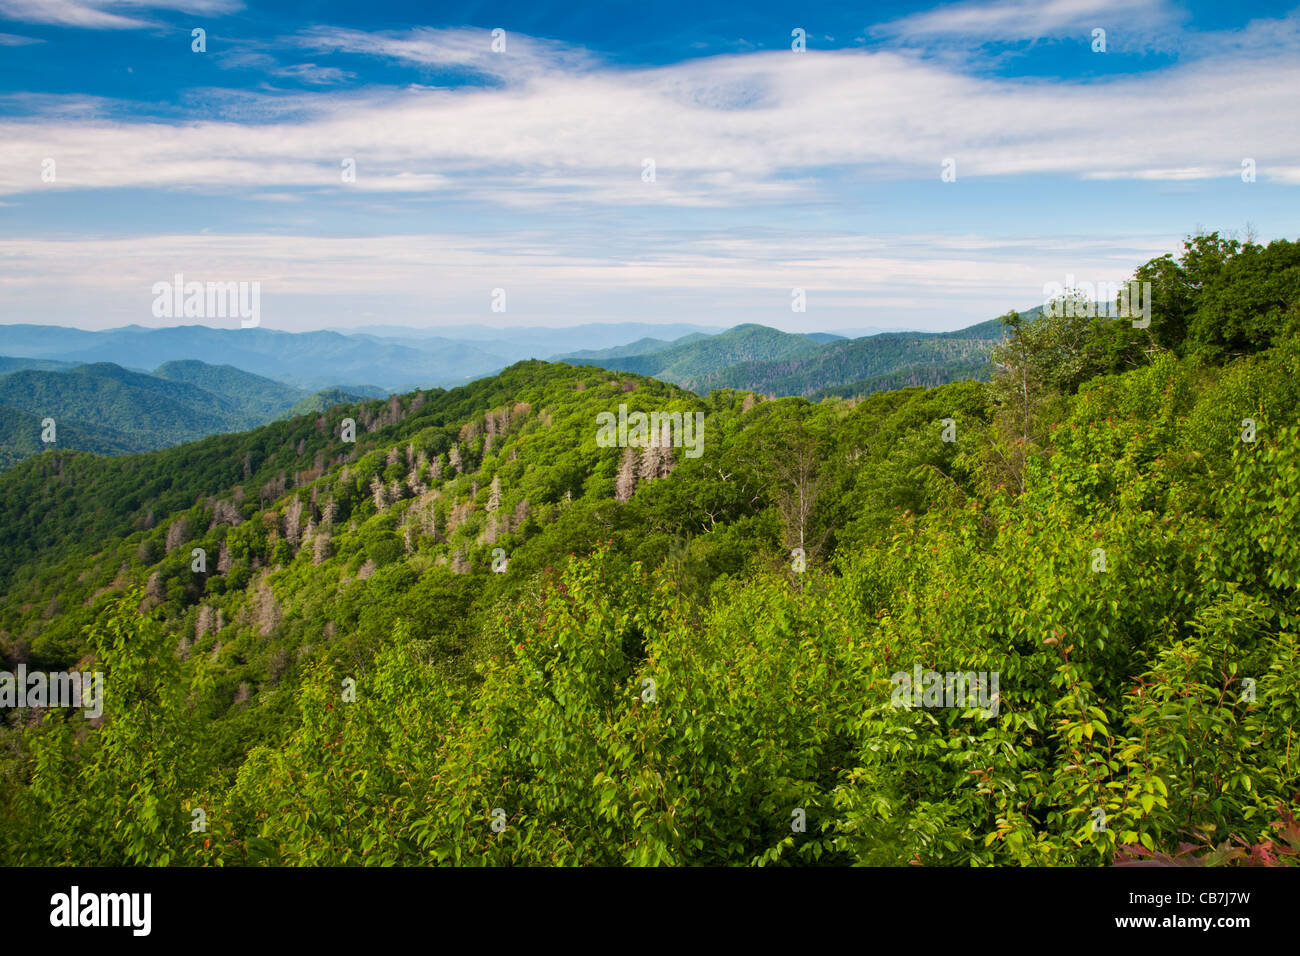 Overlook View in the Great Smoky Mountains National Park on the North Carolina side of the park. - Stock Image